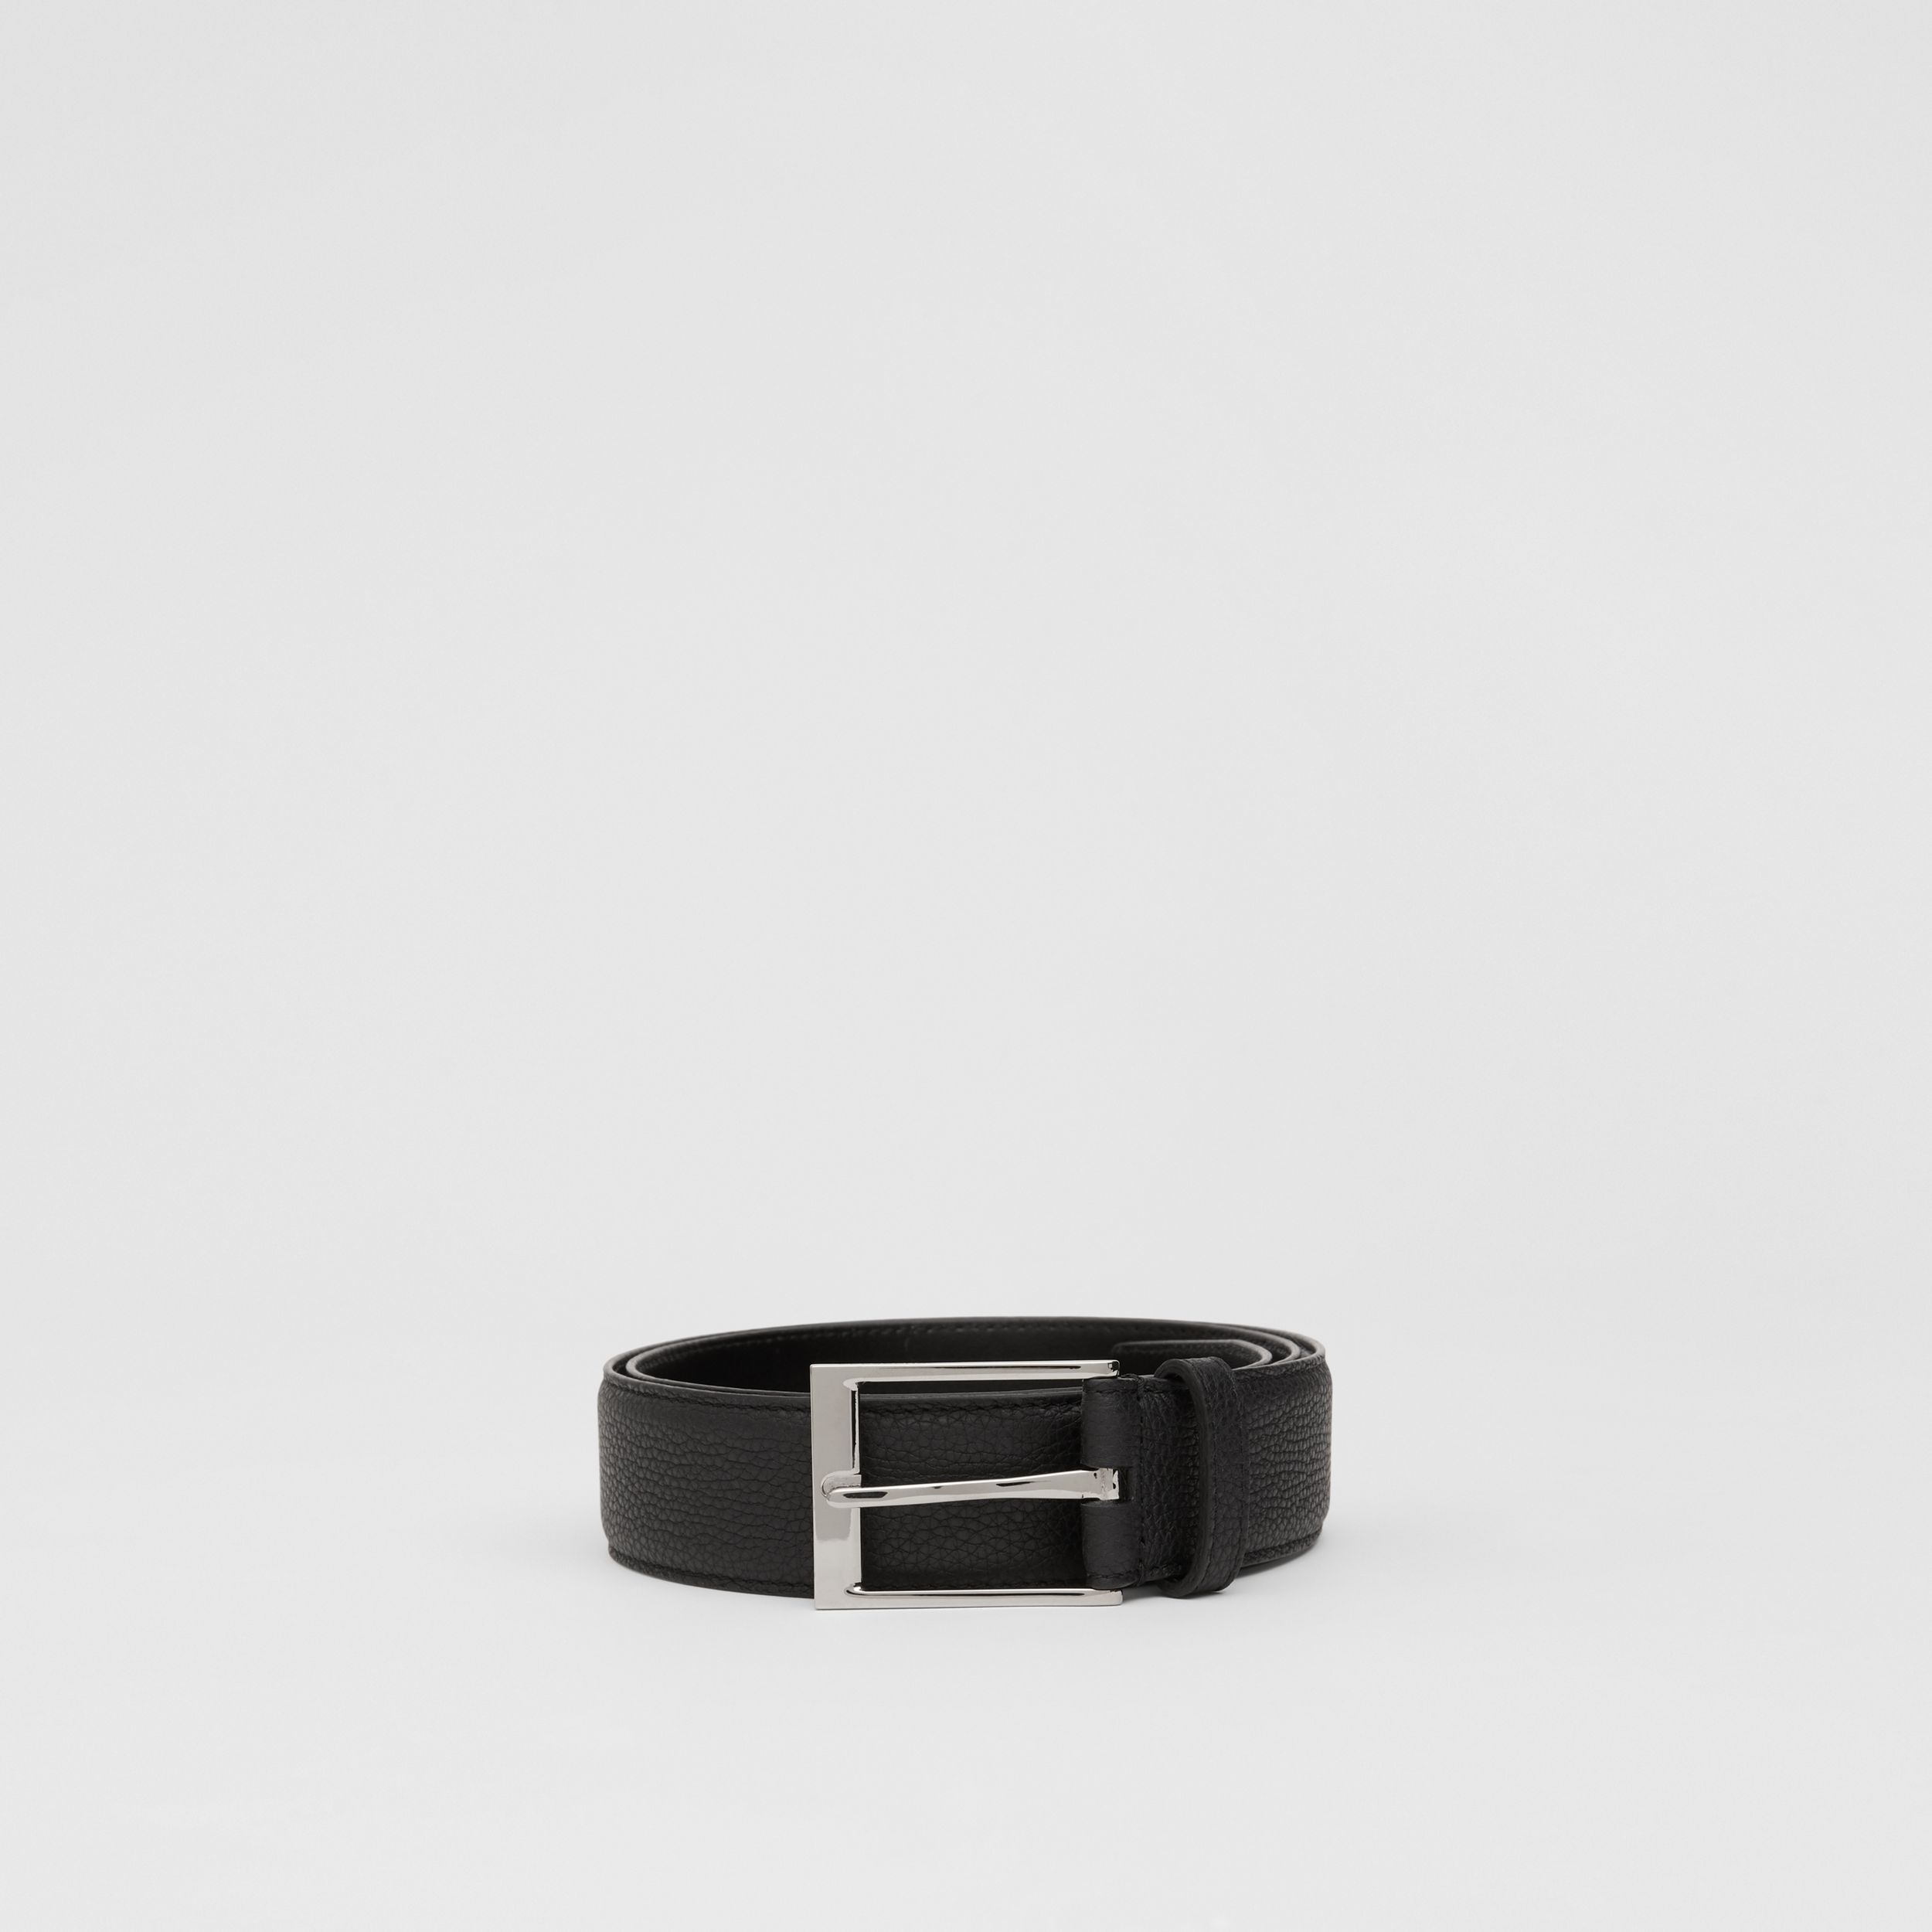 Grainy Leather Belt in Black - Men | Burberry - 4